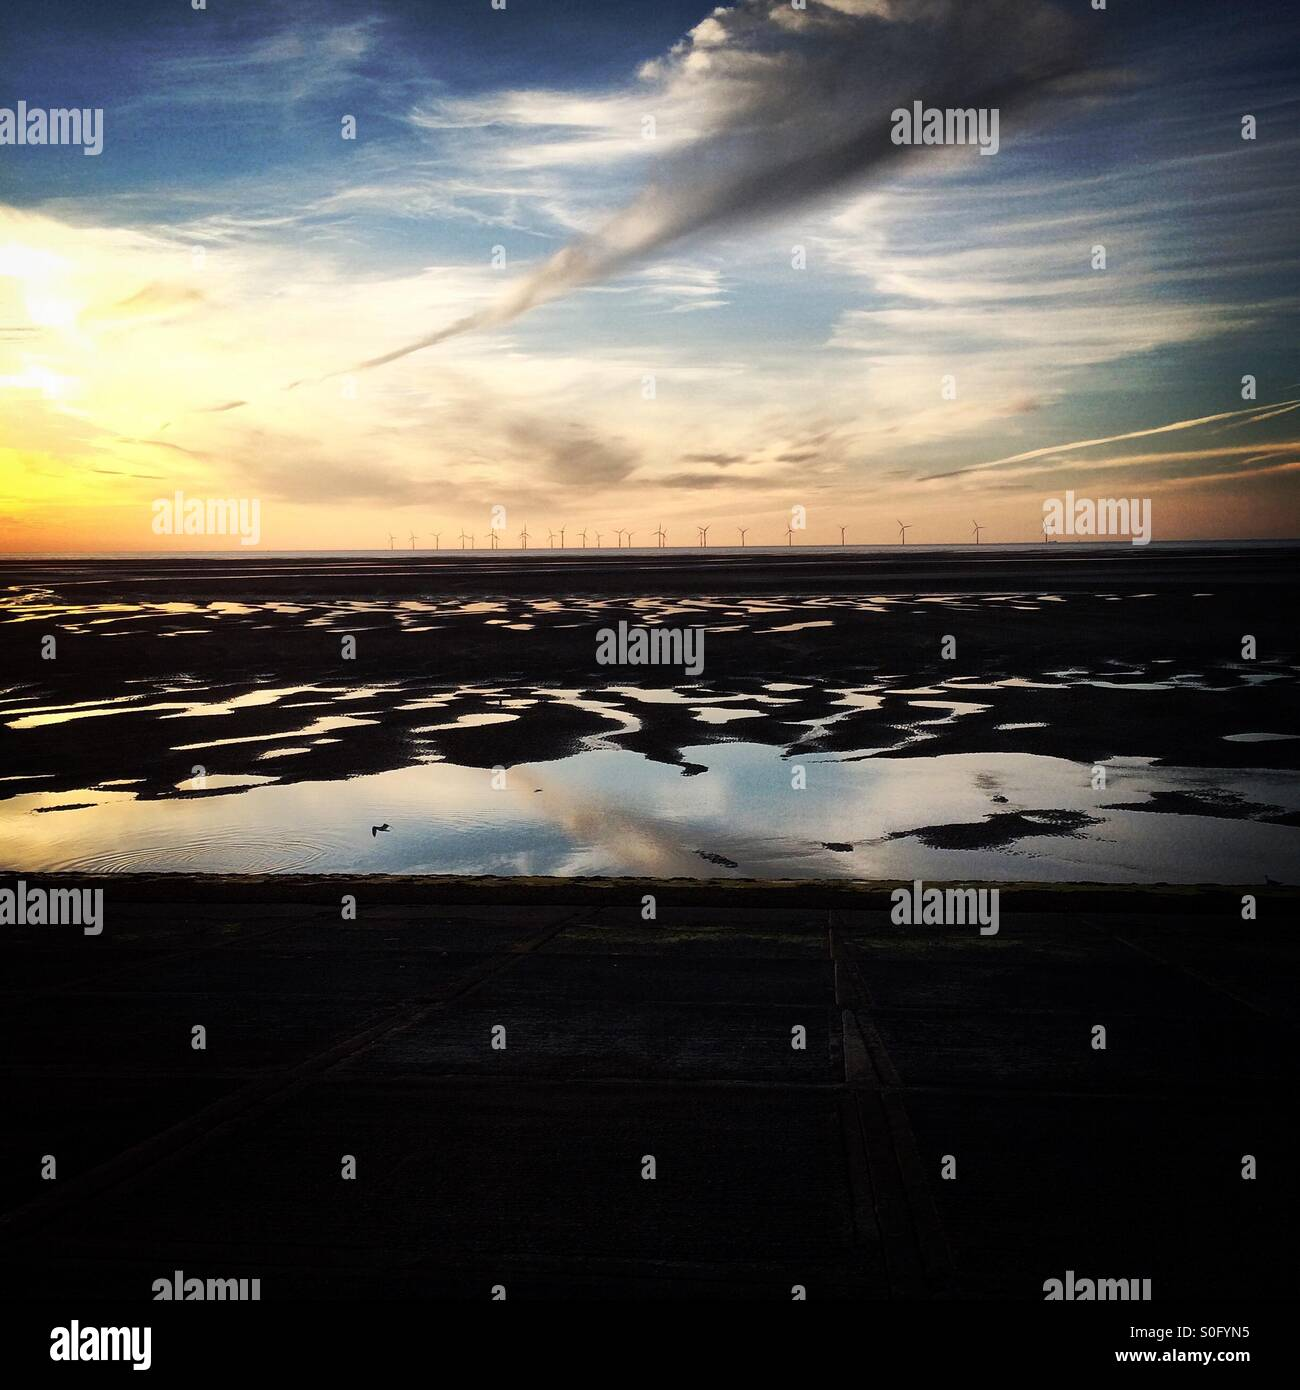 The Burbo Bank wind farm in Liverpool Bay, north west England, seen at sunset from the Wirral shoreline. - Stock Image